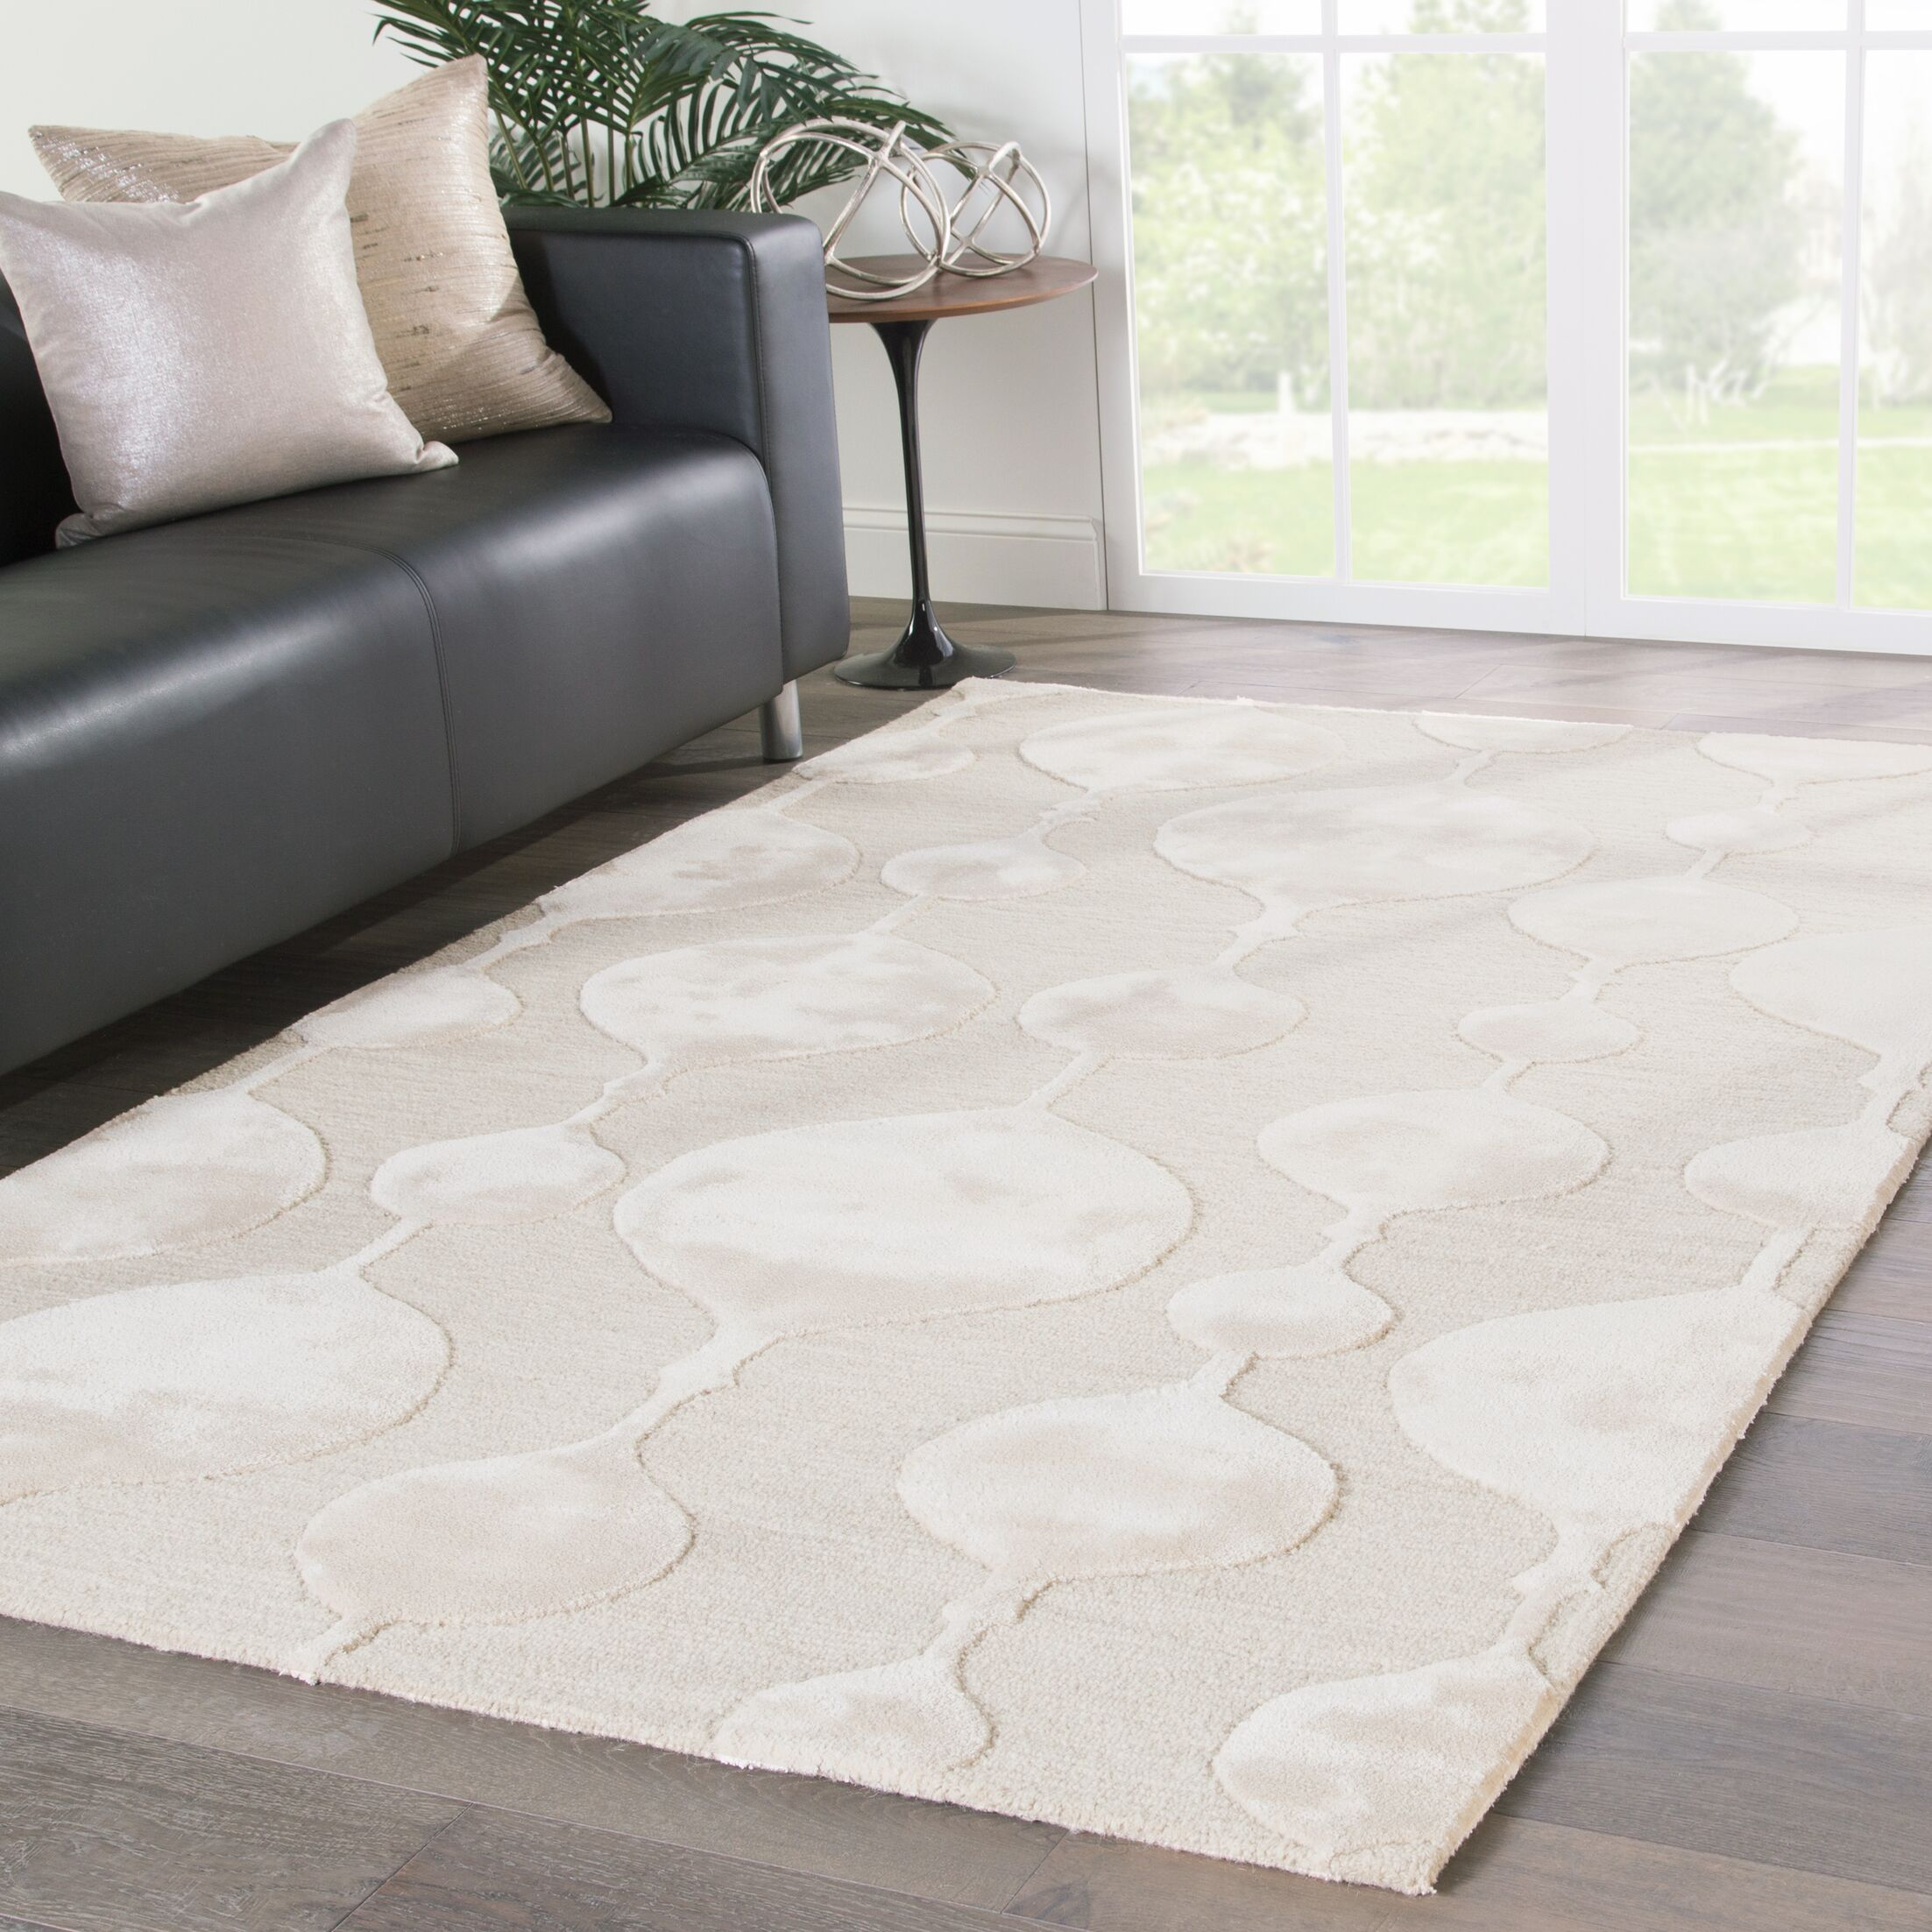 Geometric Jaipur Living Sui Hand-Tufted Beige/Cream Area Rug Rug Size: Rectangle 5' x 8'